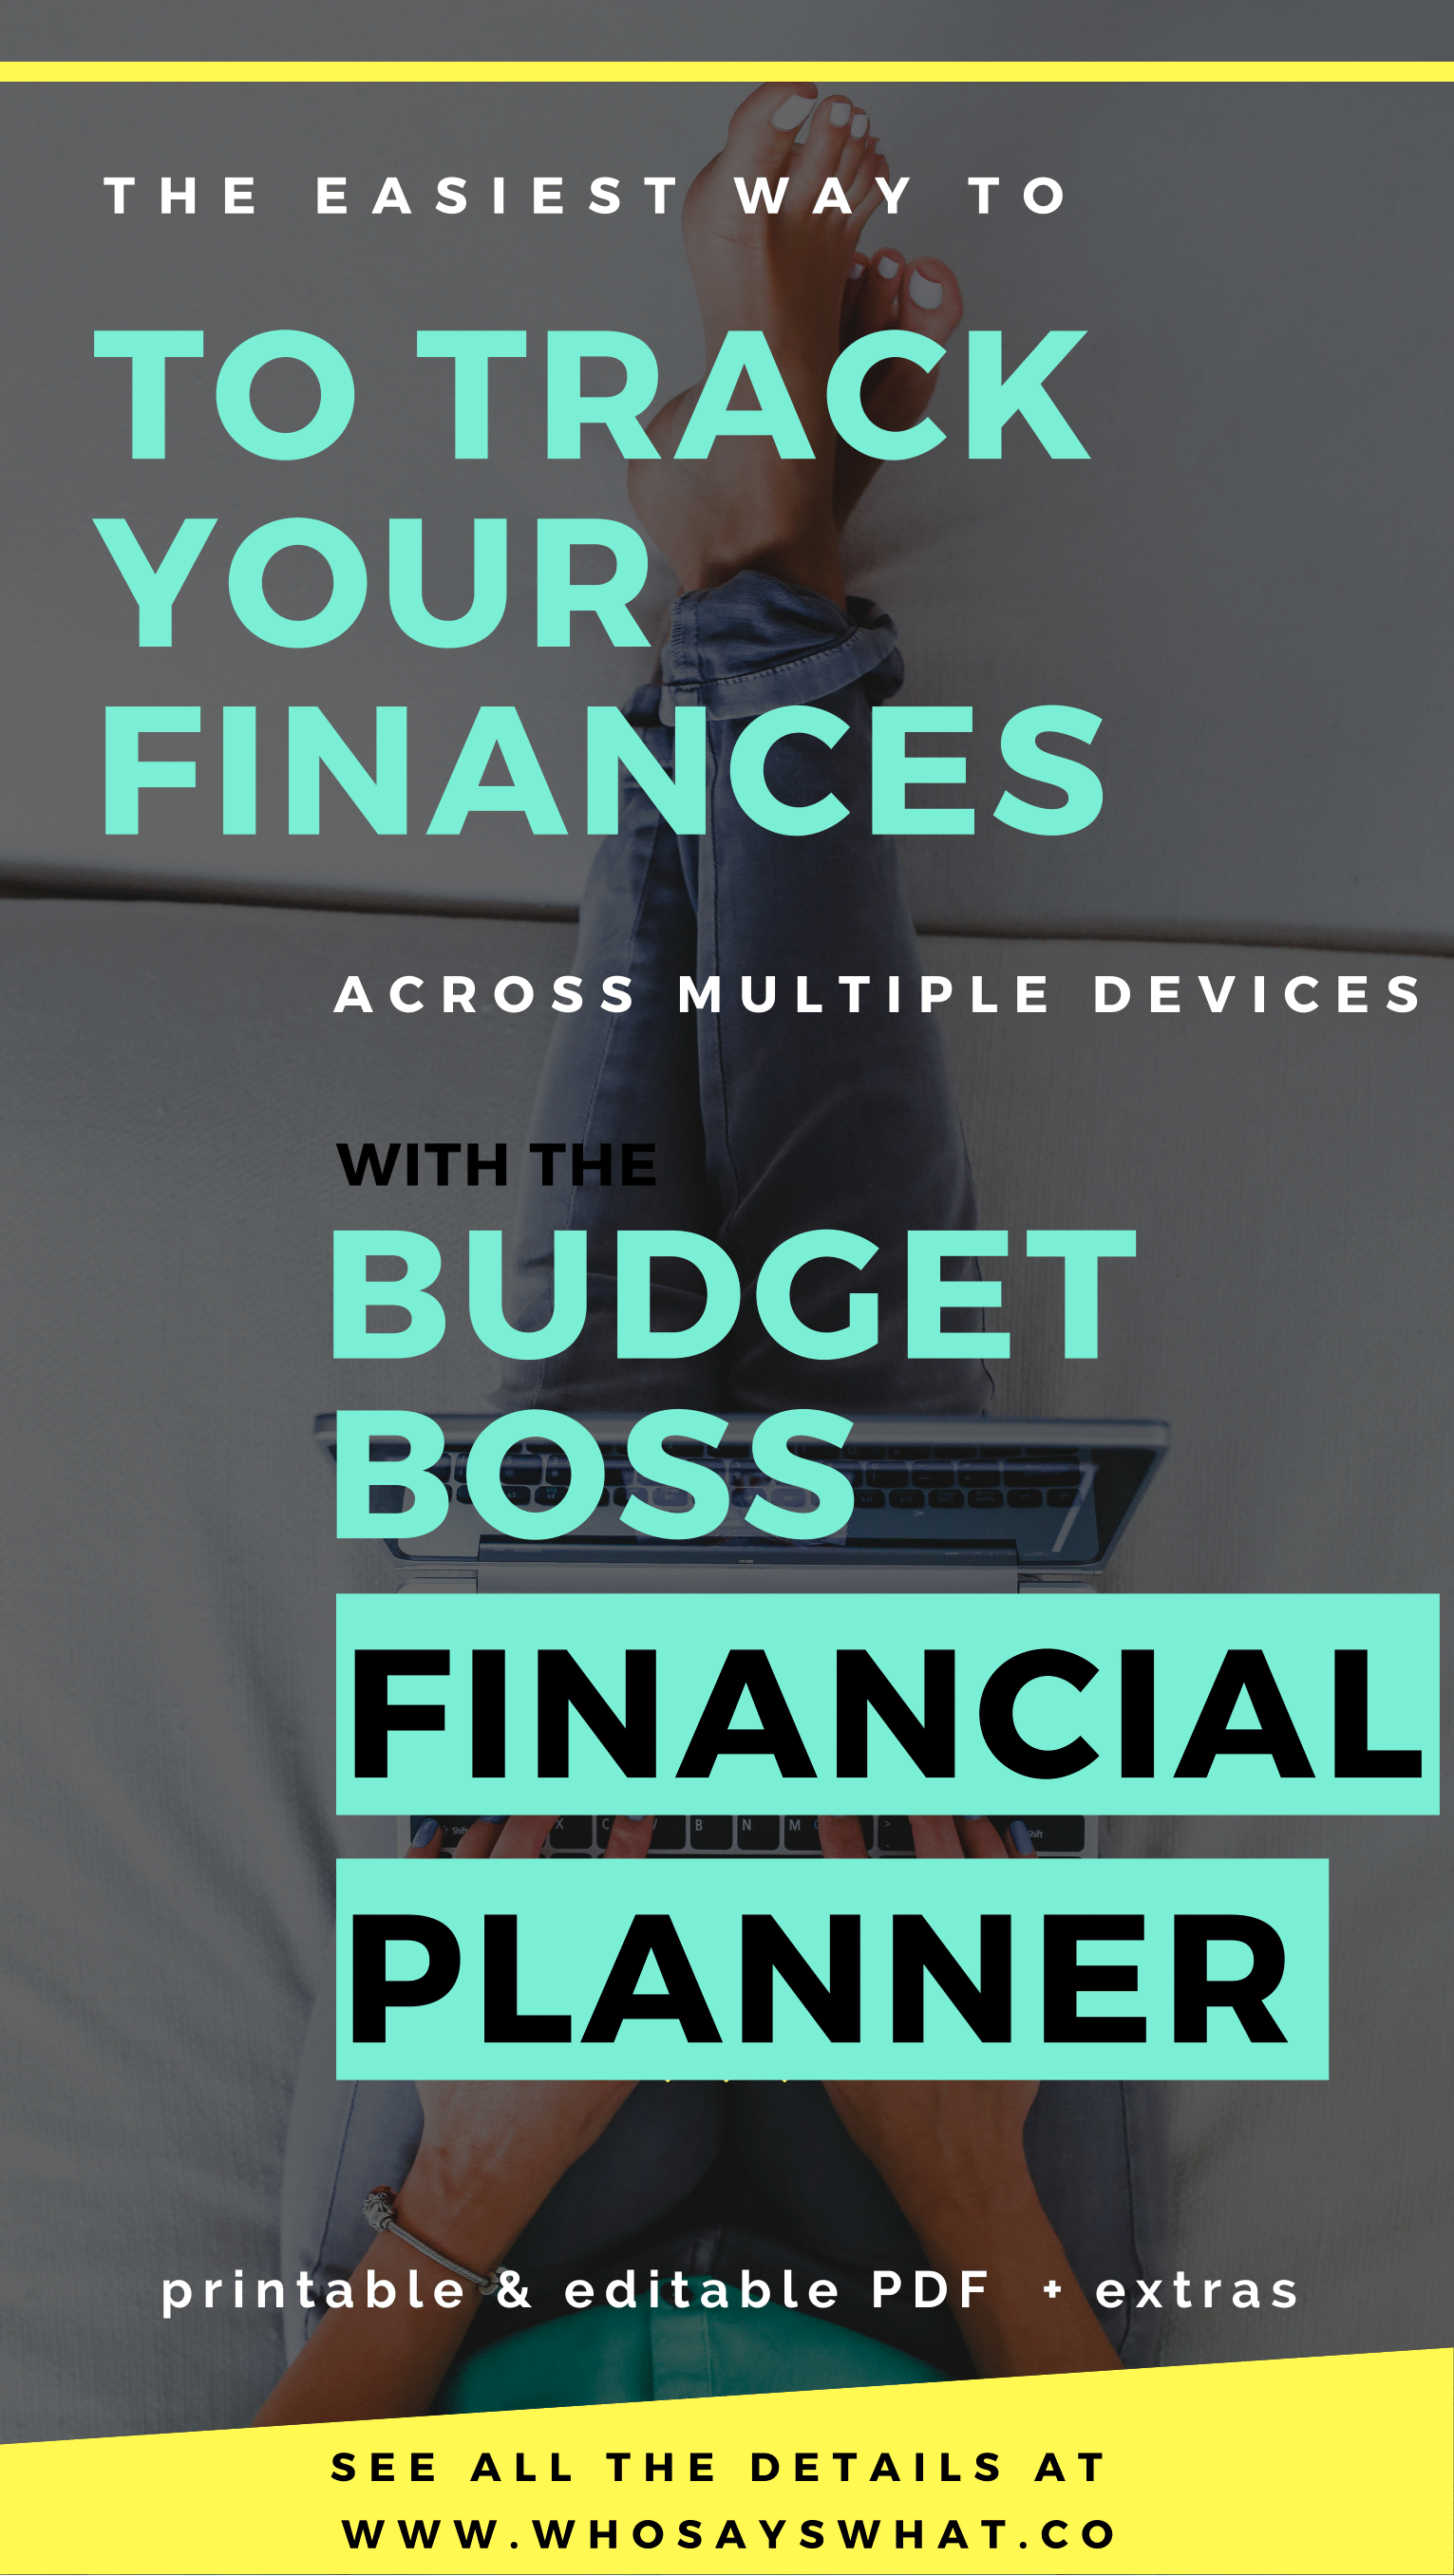 The Only Financial Planner You Need To Budget Like A Boss